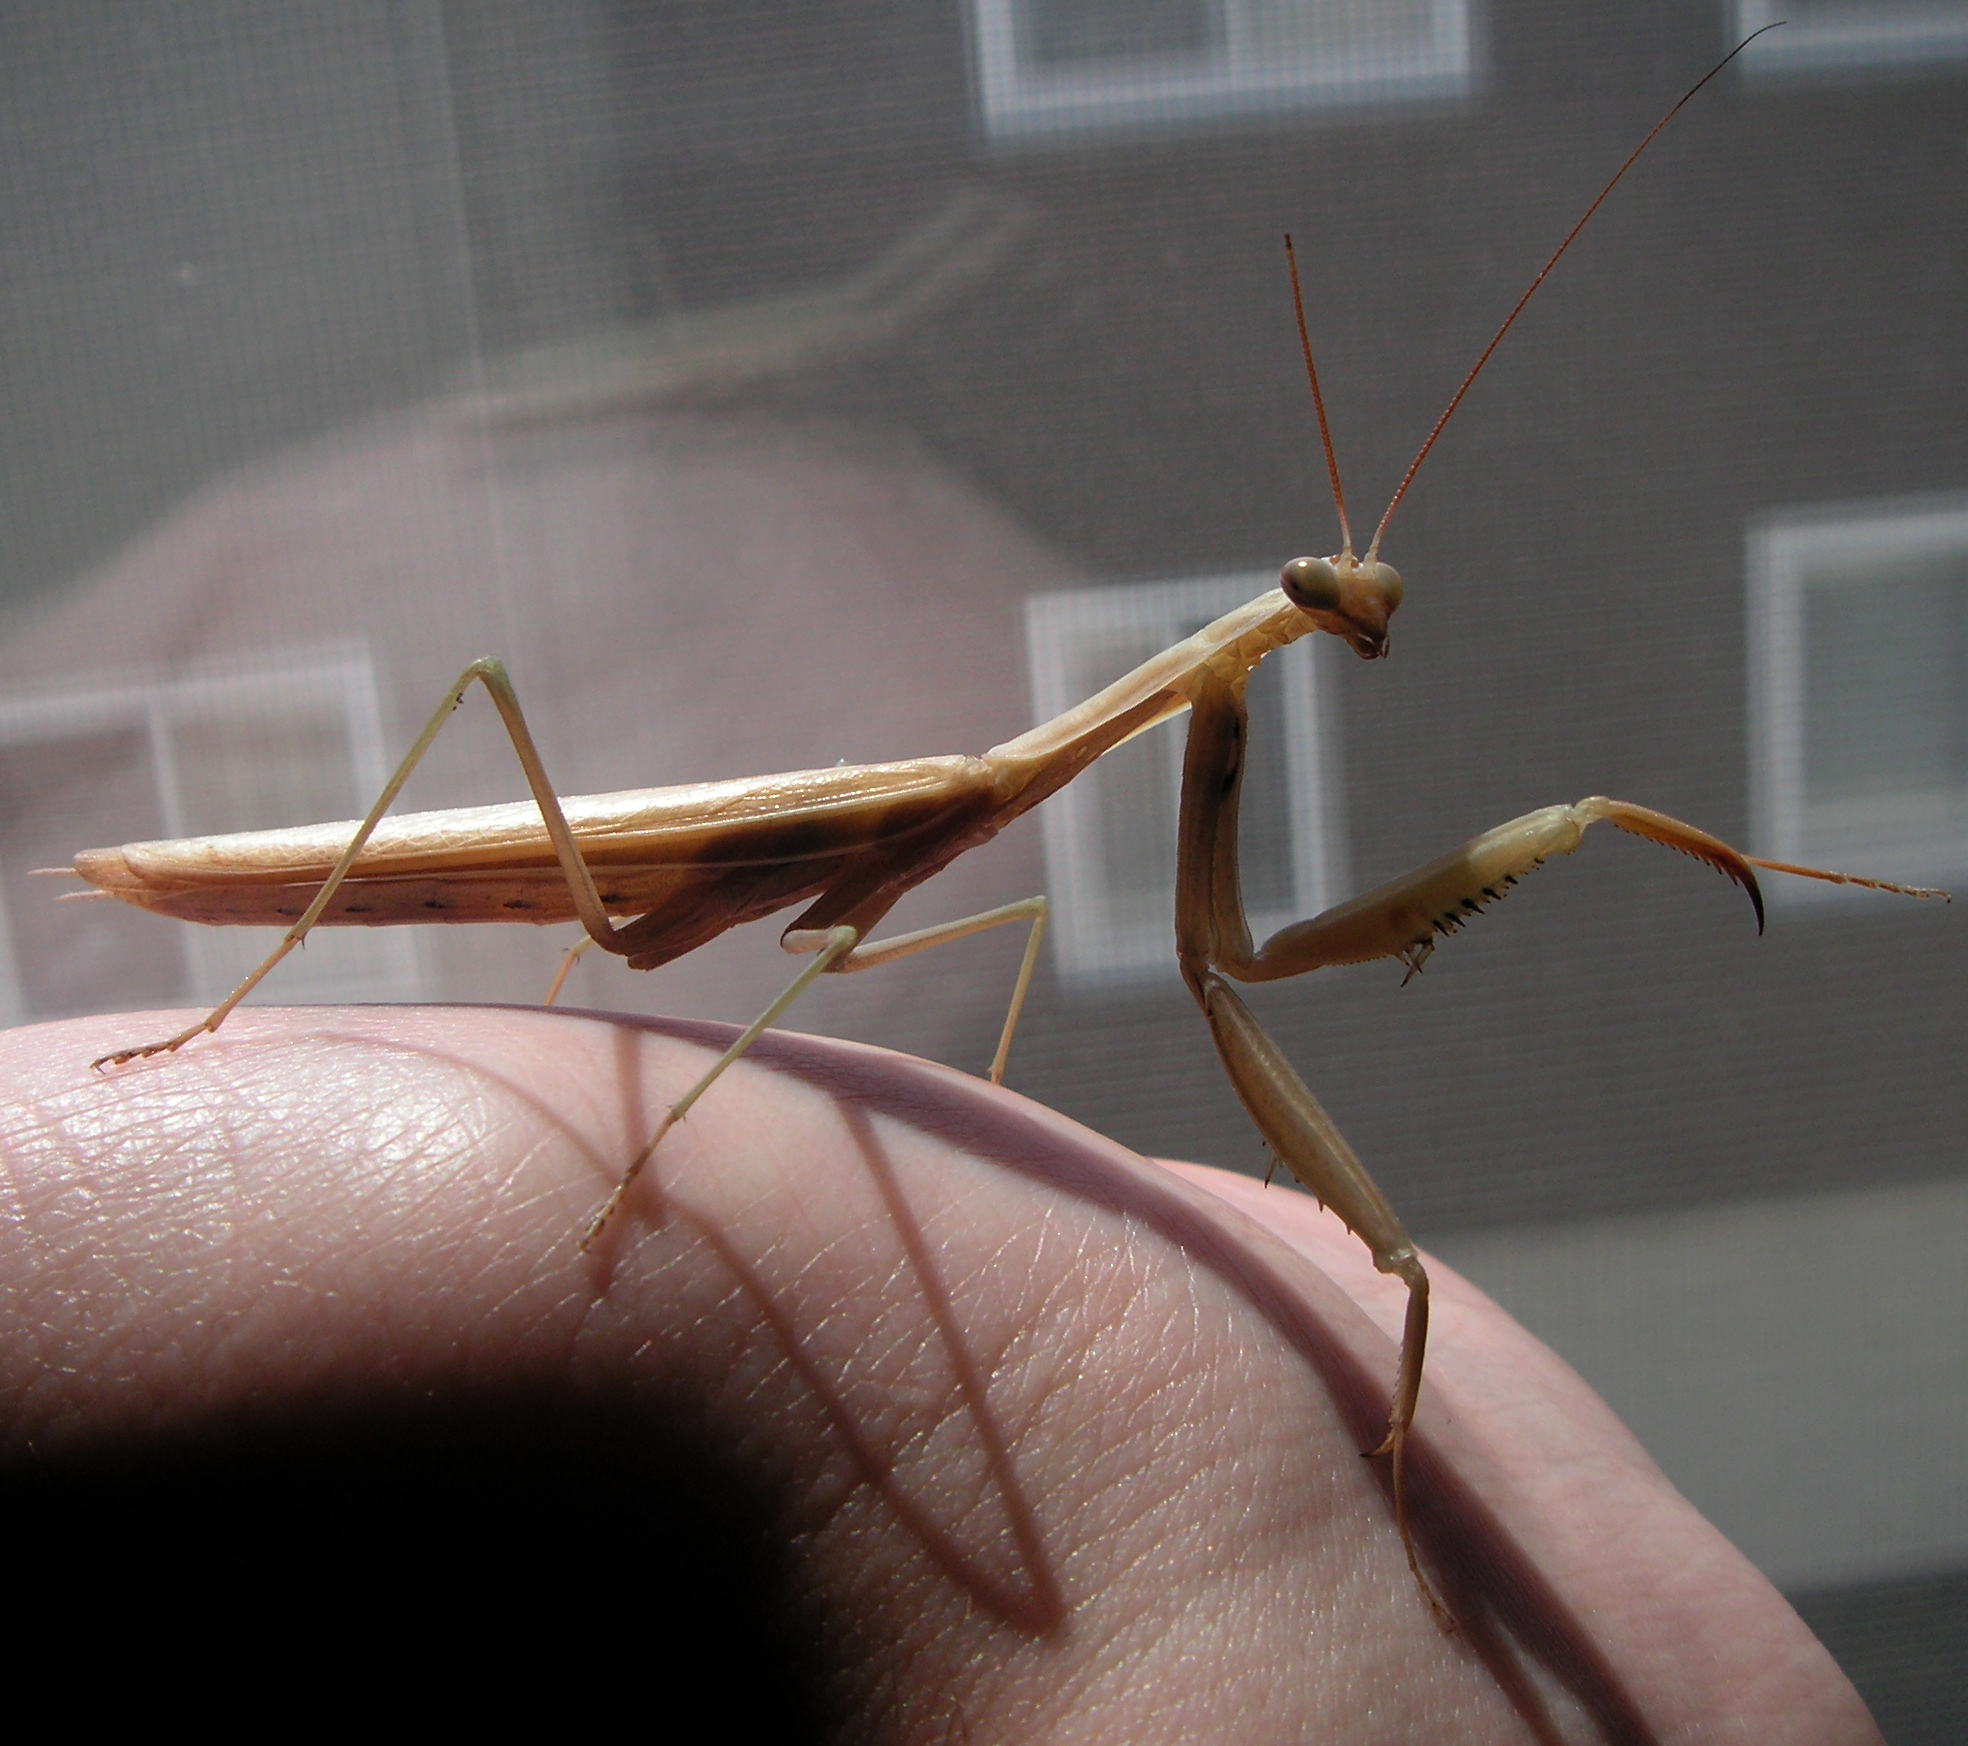 File:Praying Mantis .jpg - Wikimedia Commons